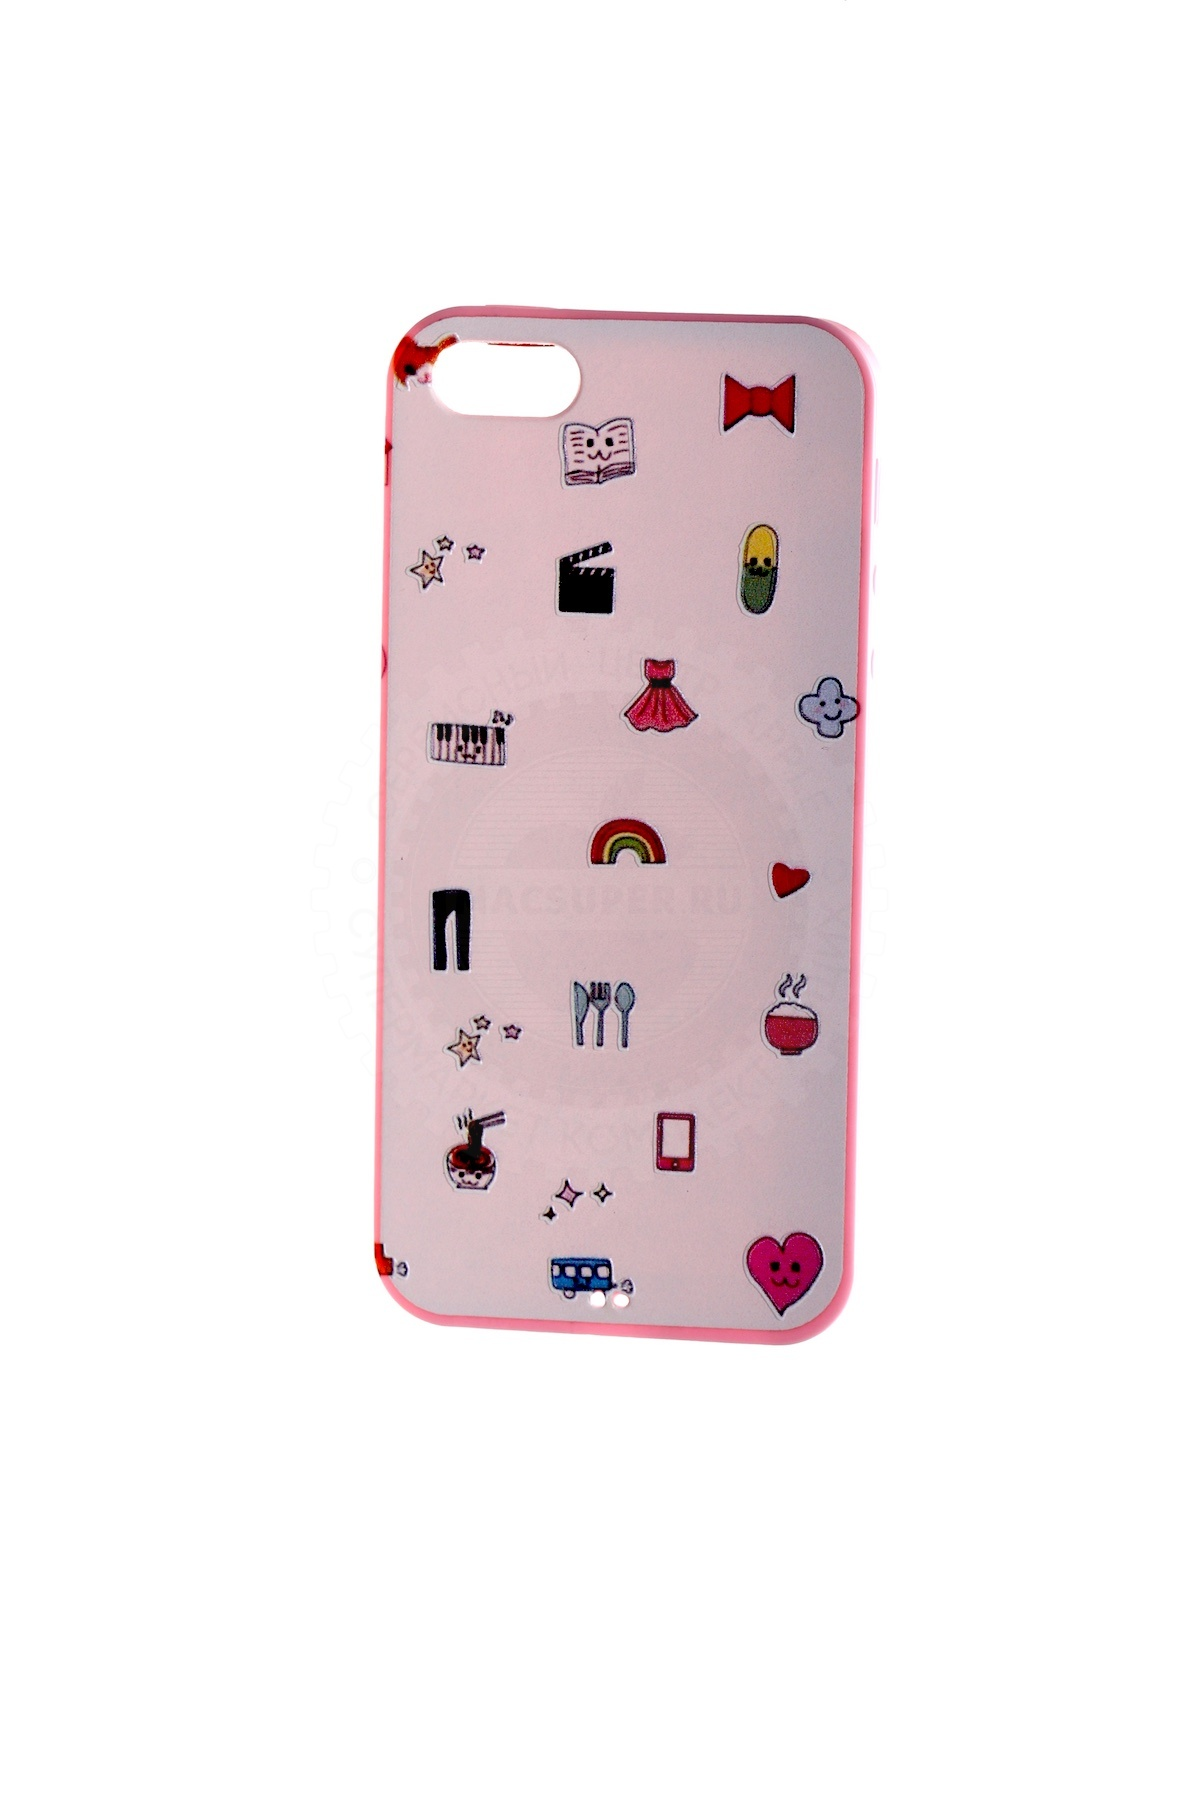 Купить чехол girlish pictures pink для iphone 5/5s/5se